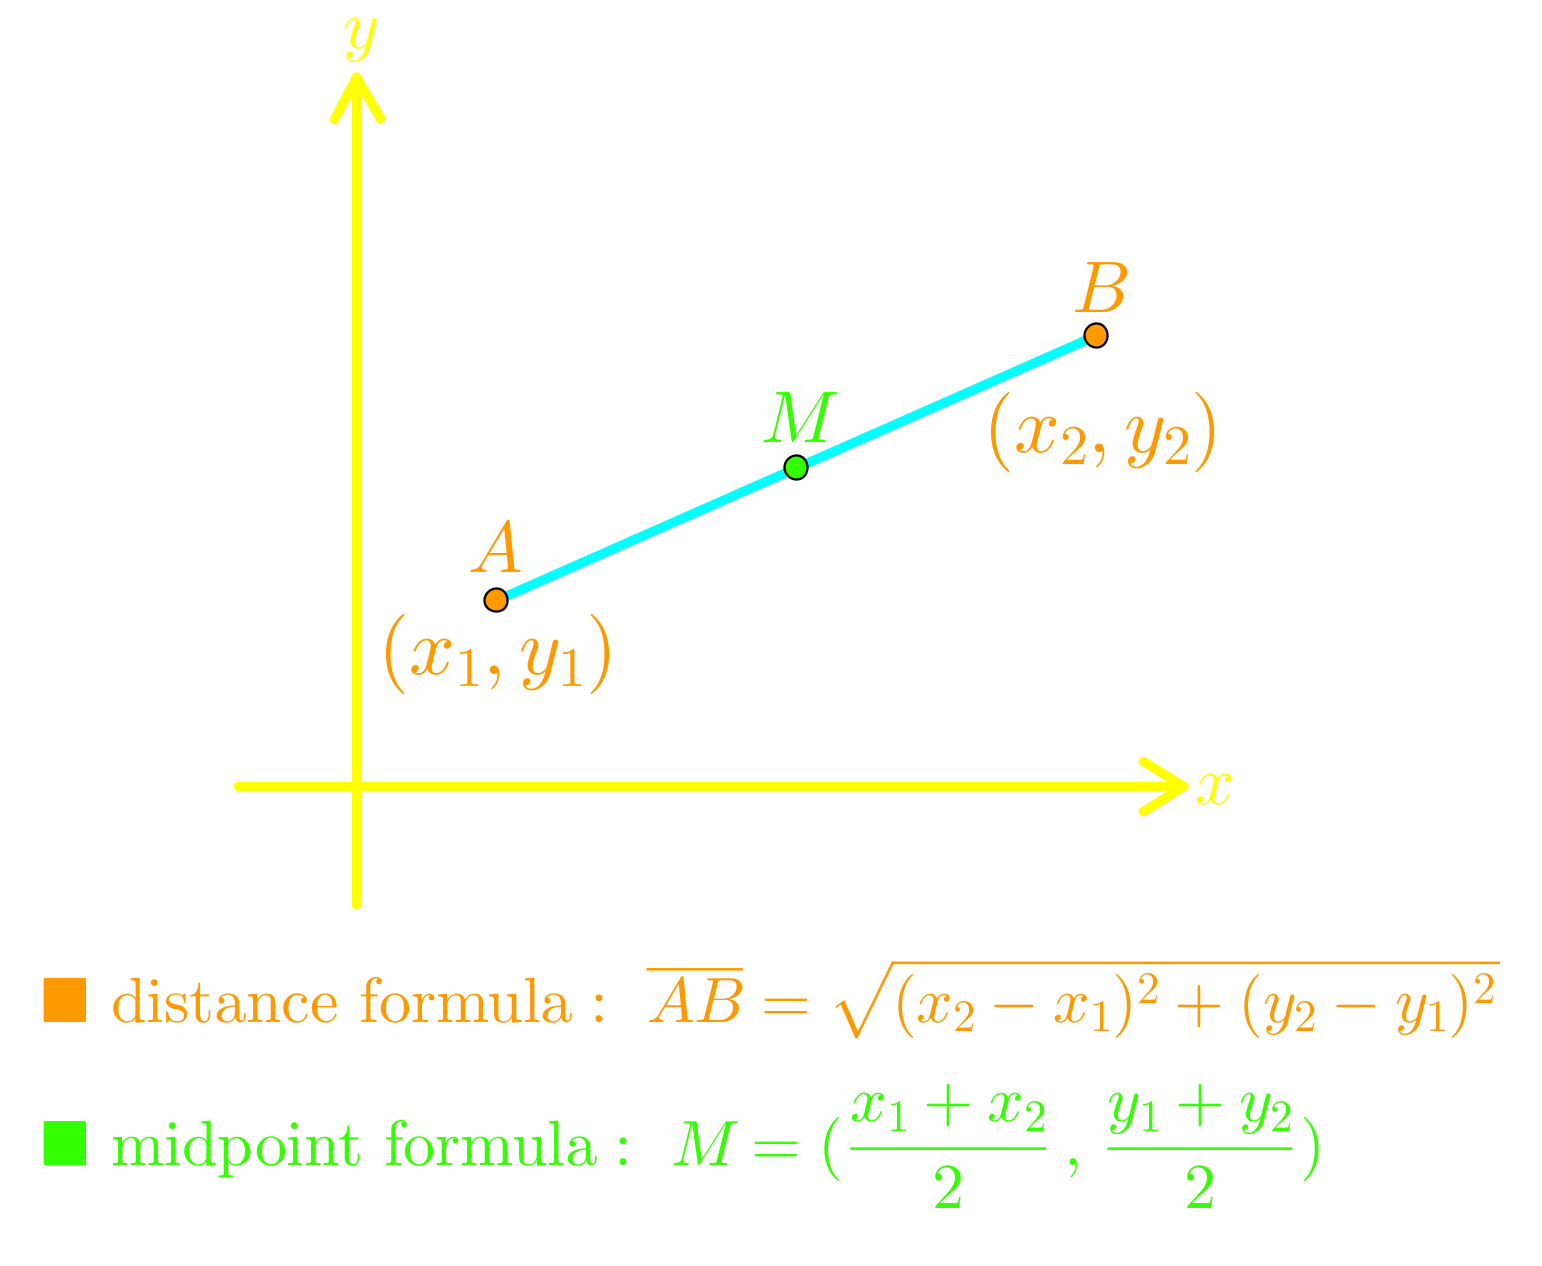 distance formula, midpoint formula and circle